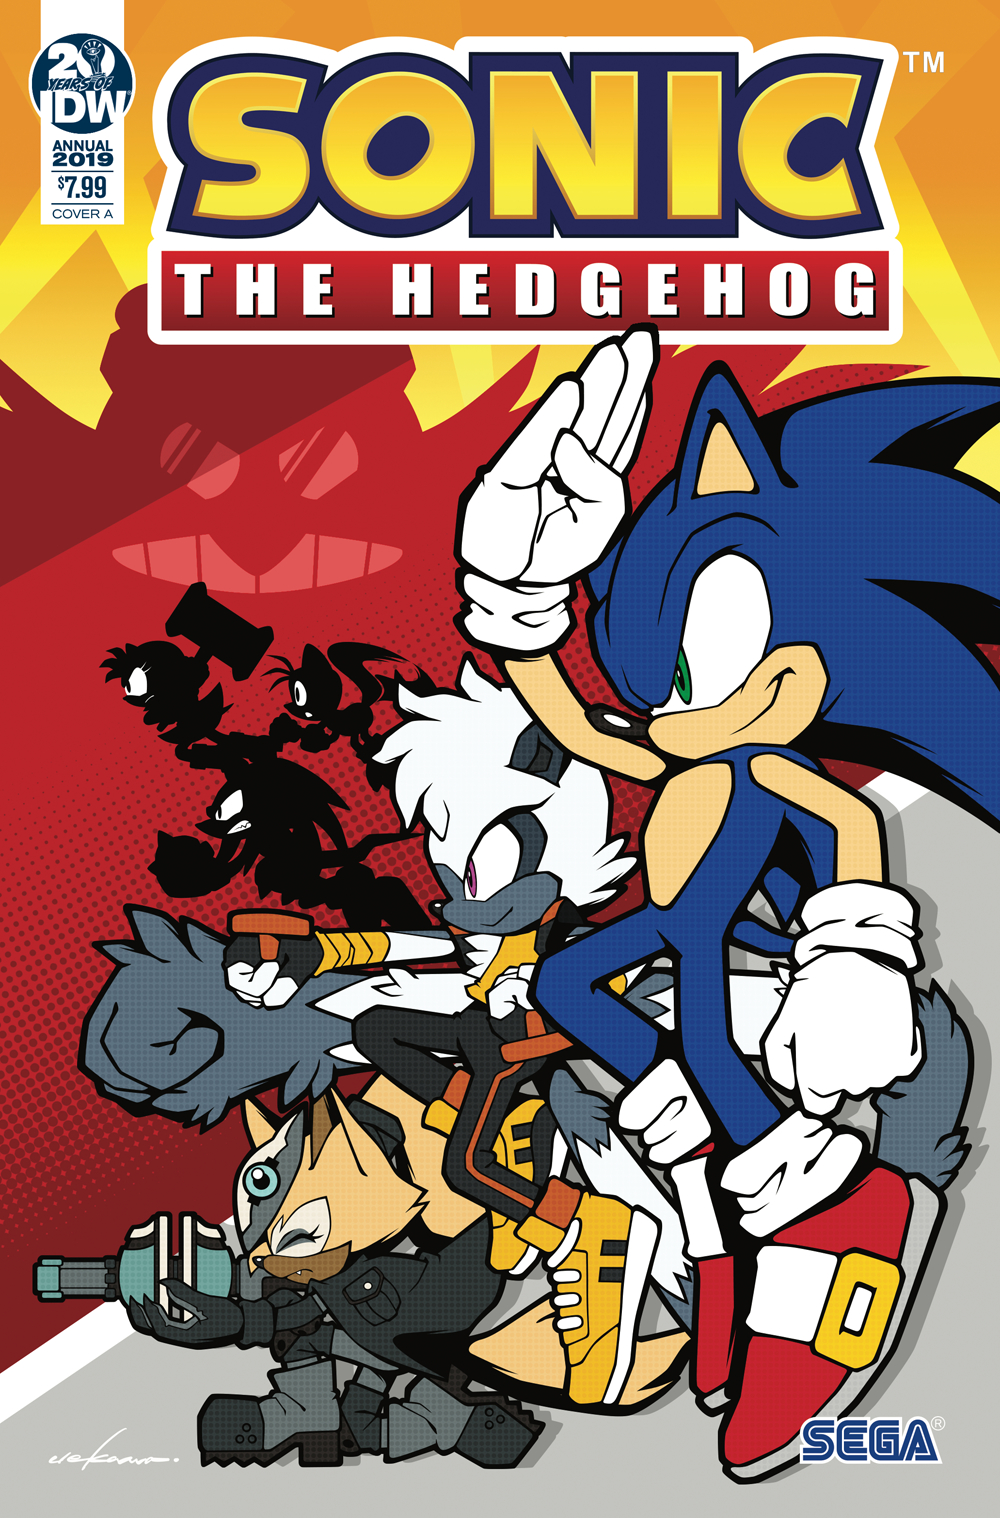 SONIC THE HEDGEHOG ANNUAL 2019 CVR A SONIC TEAM